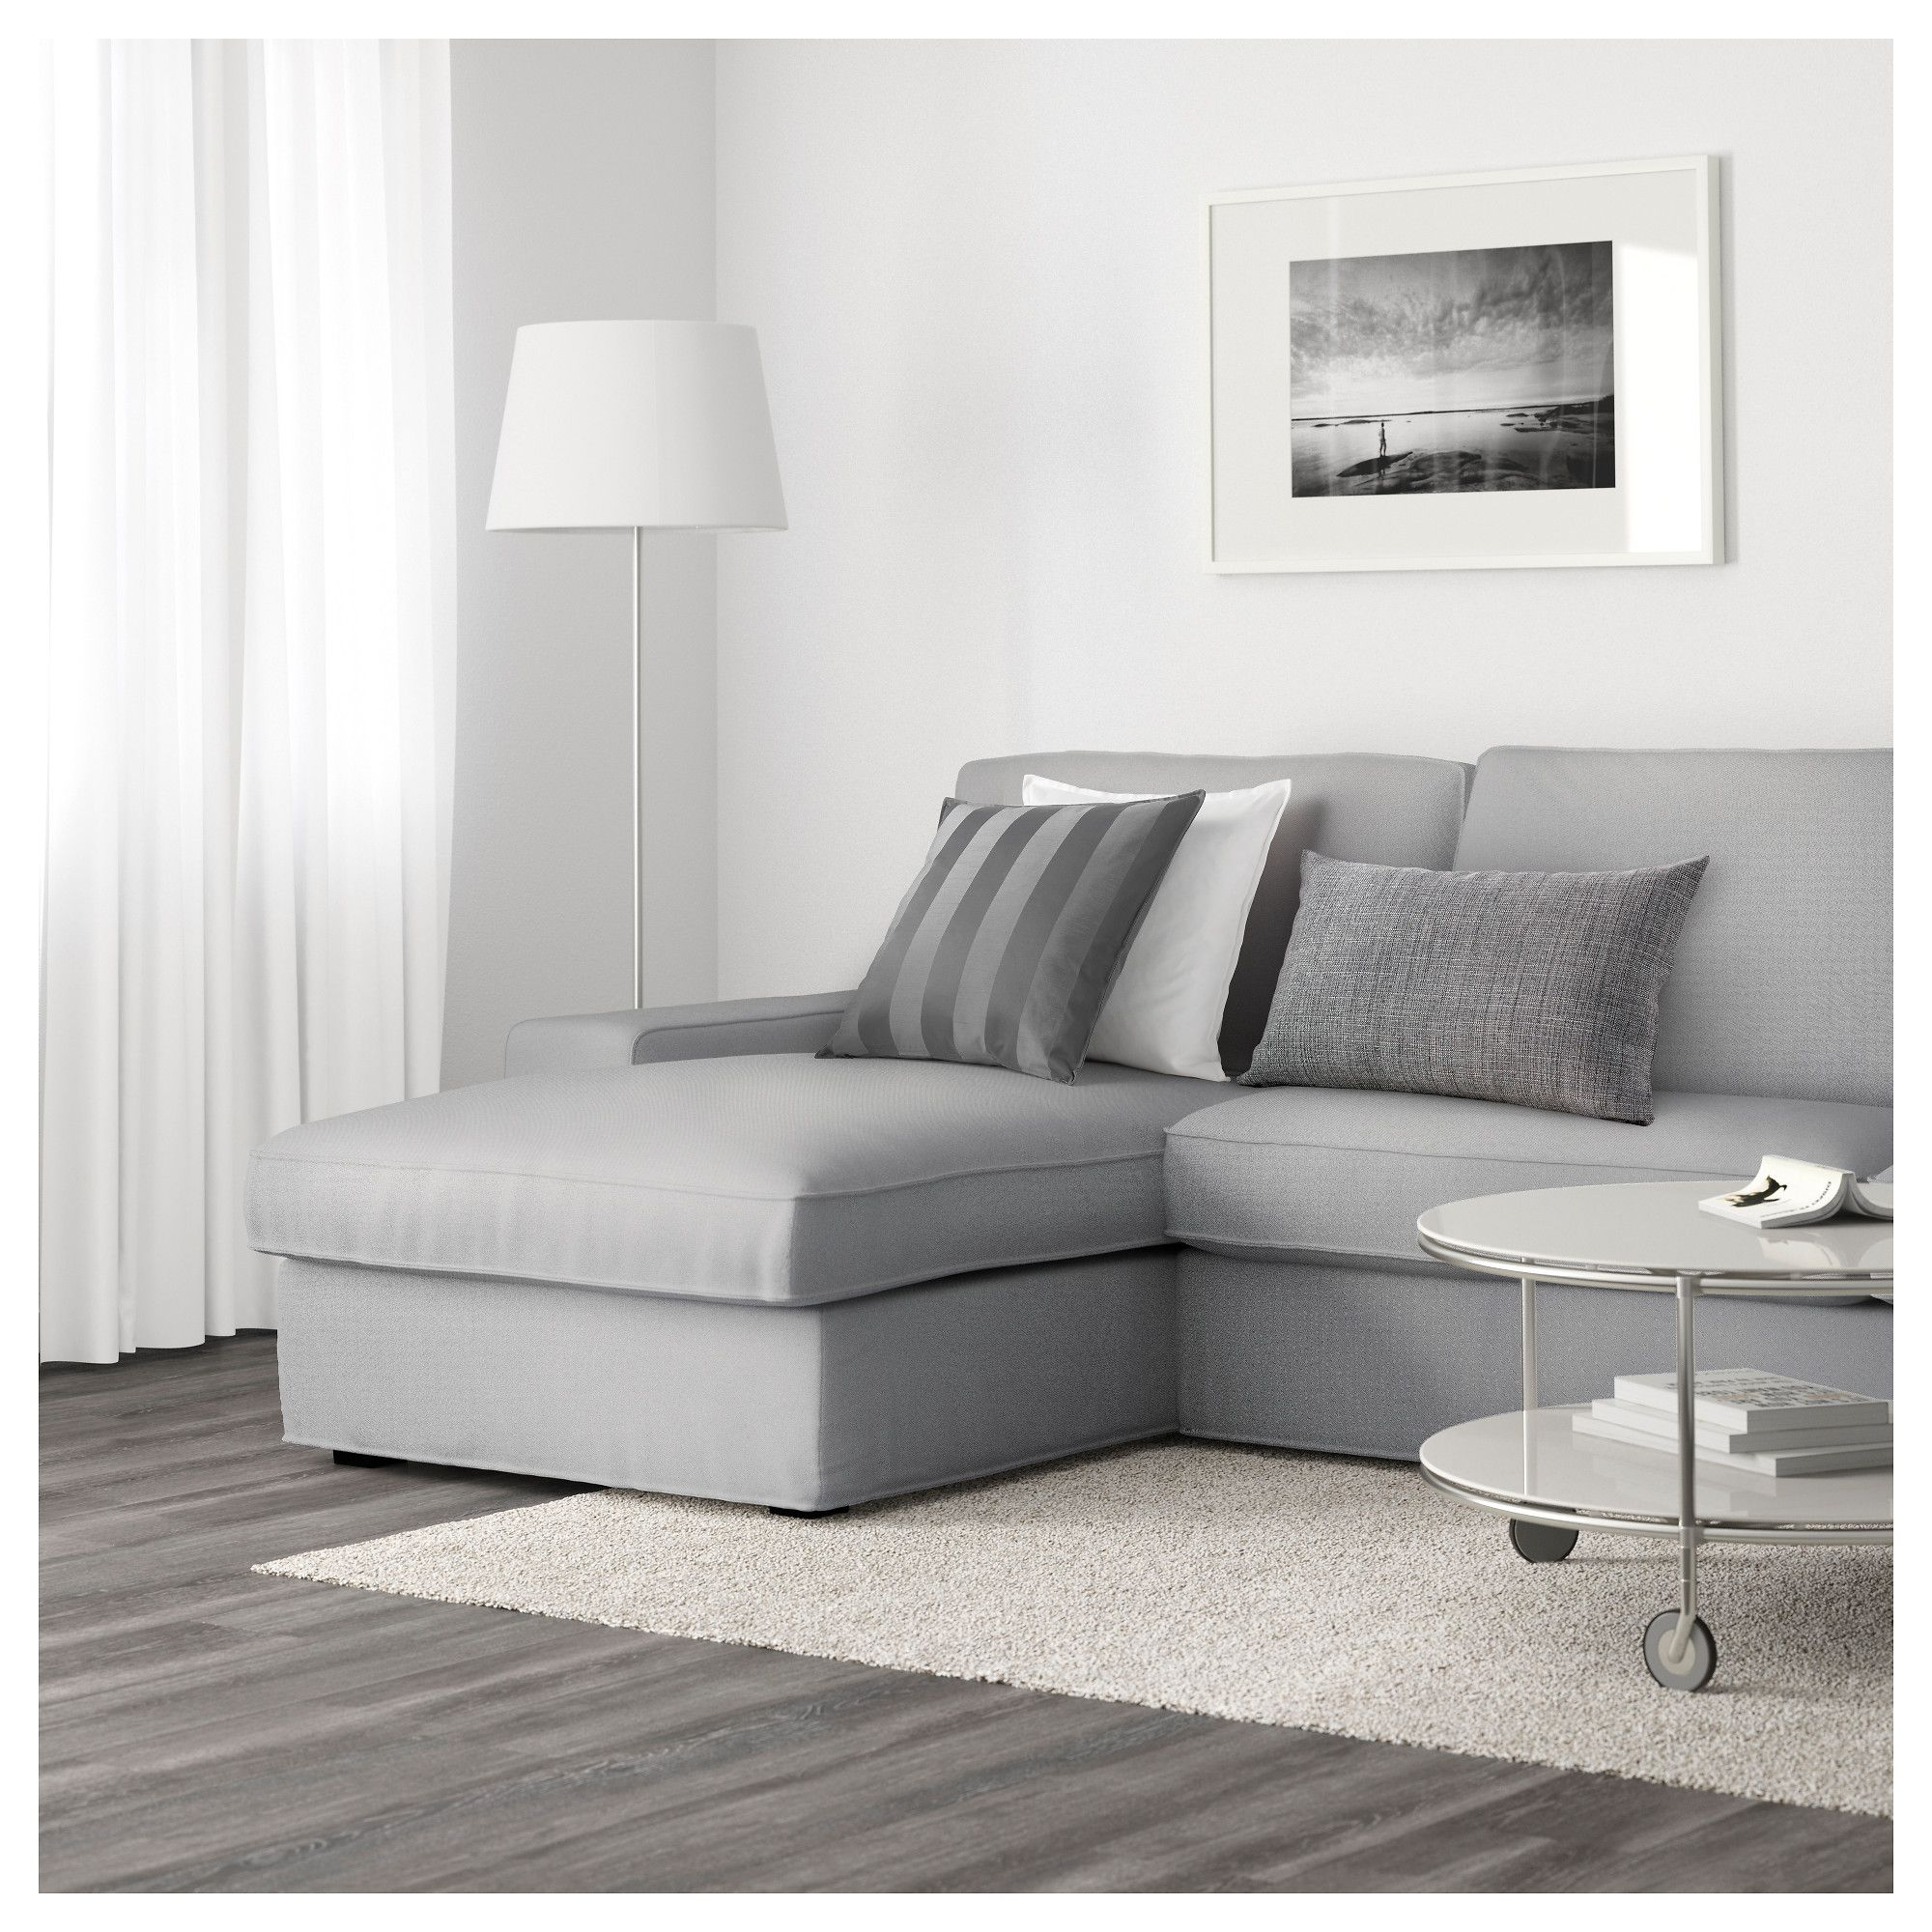 Kivik Sectional Kivik Sectional 4 Seat Orrsta With Chaise Orrsta Light Gray